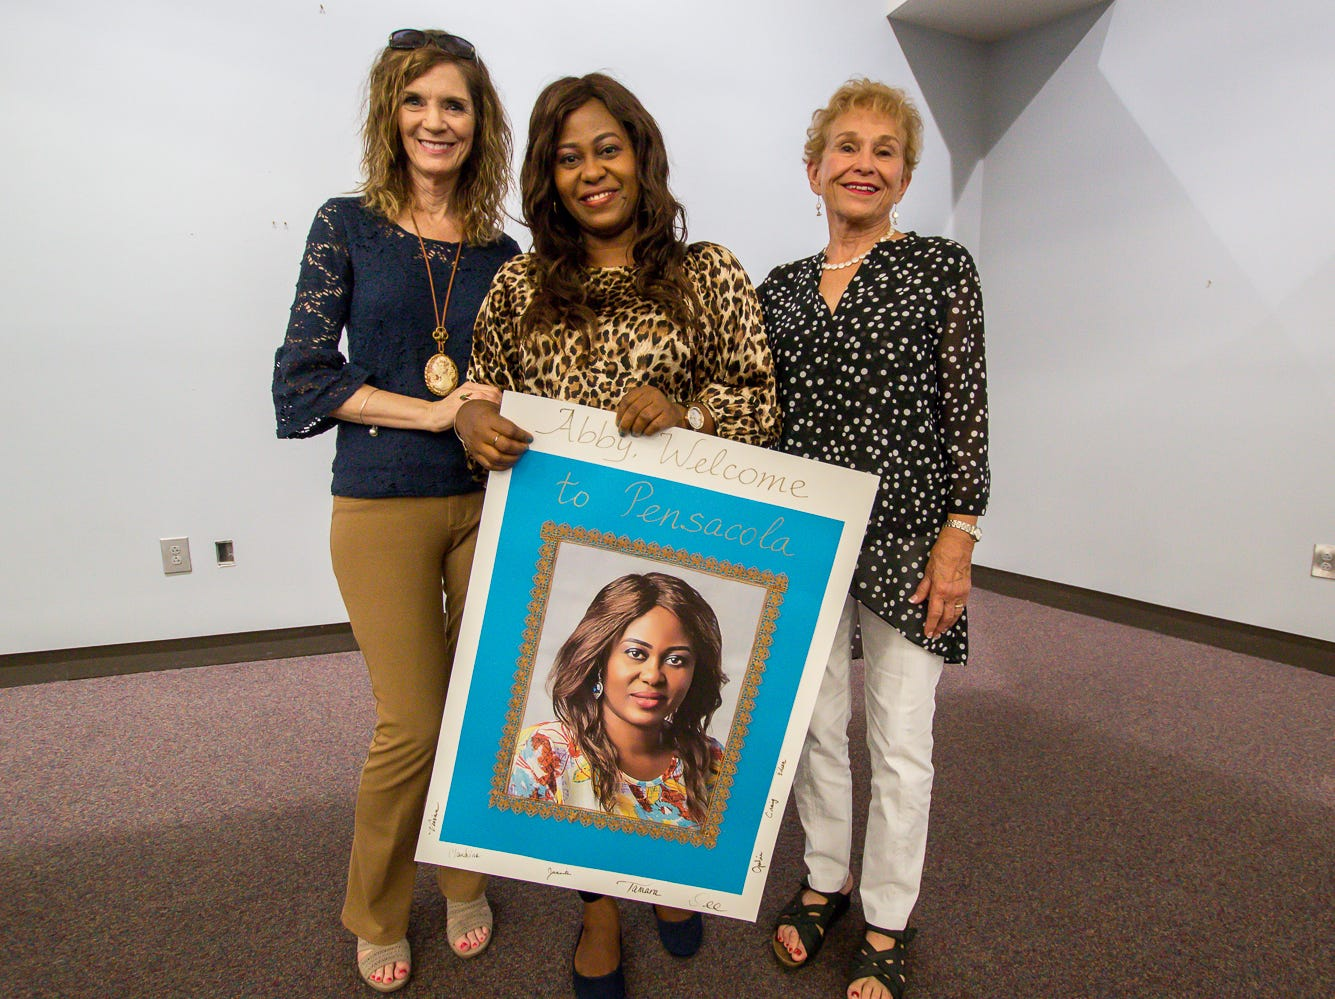 The Great Gulfcoast Arts Festival's Invited International Artist Abigail Nnaji, of Abuja, Nigeria, center, poses for a photo with GGAF committee members Tamara Mitchell, left, and Dee Green, right, before her presentation in the Anna Lamar Switzer Building at Pensacola State College on Tuesday, October 30, 2018.